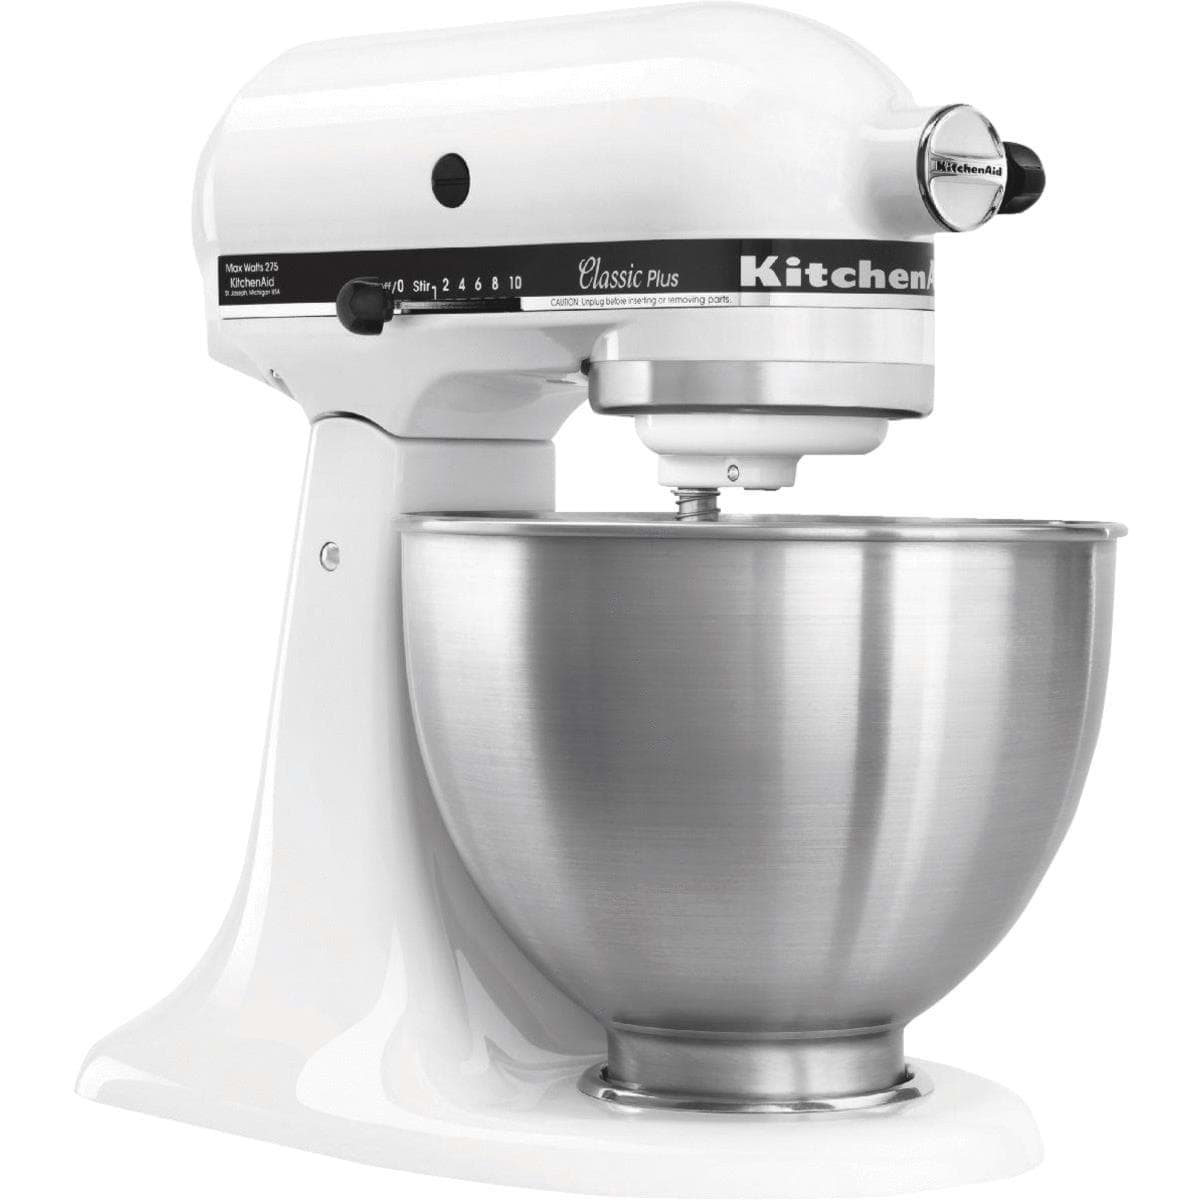 Ropesoapndope Kitchenaid Classic Plus Stand Mixer